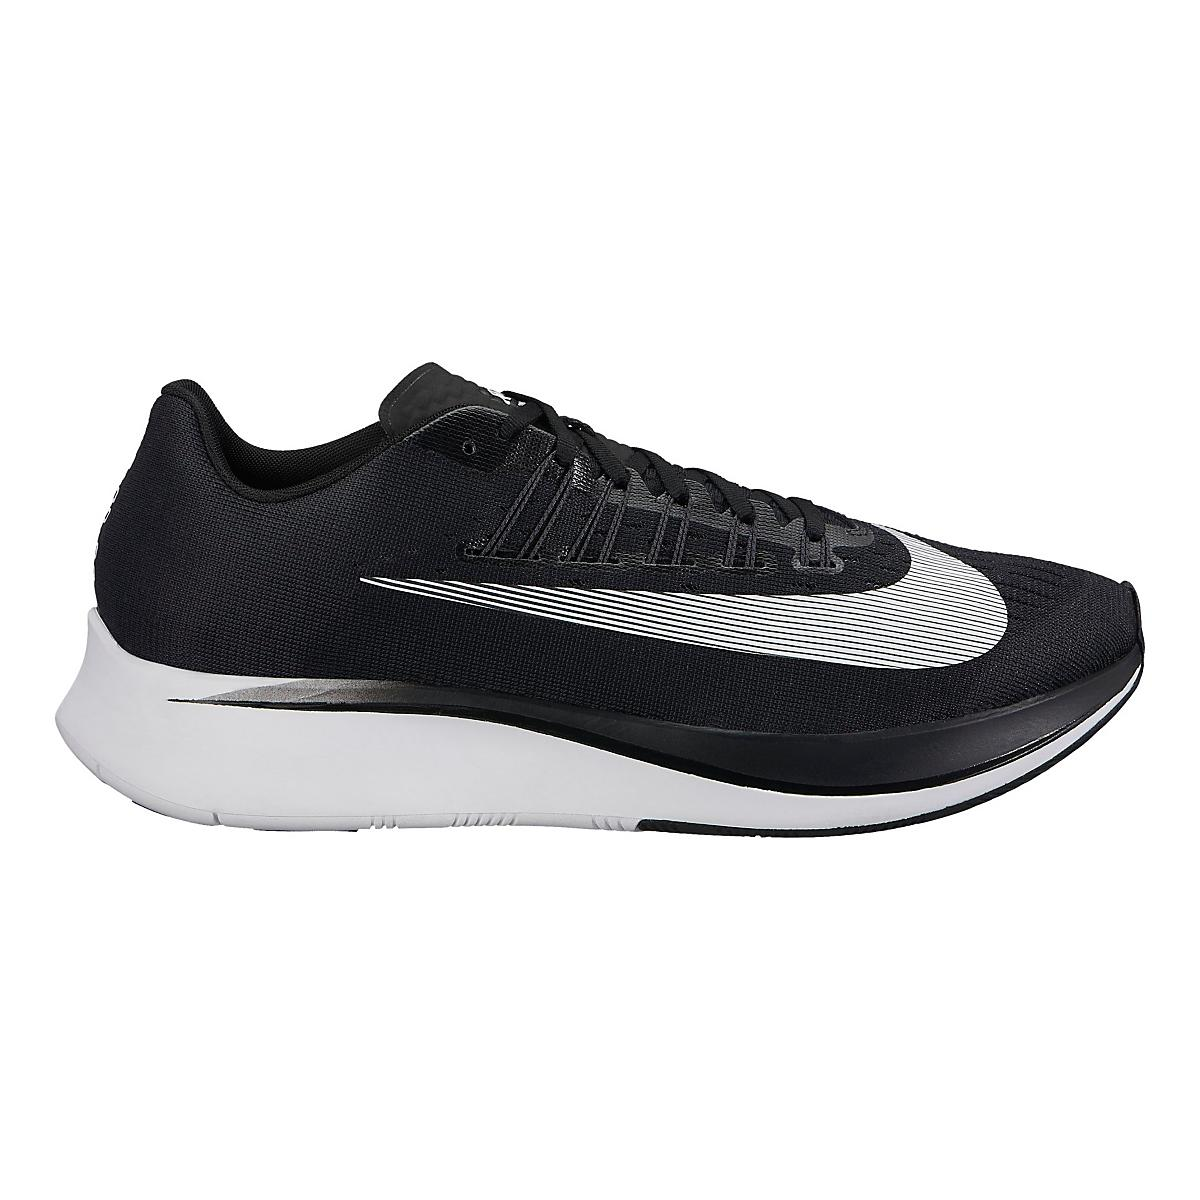 Mens Nike Zoom Fly Running Shoe at Road Runner Sports 857c773bf8